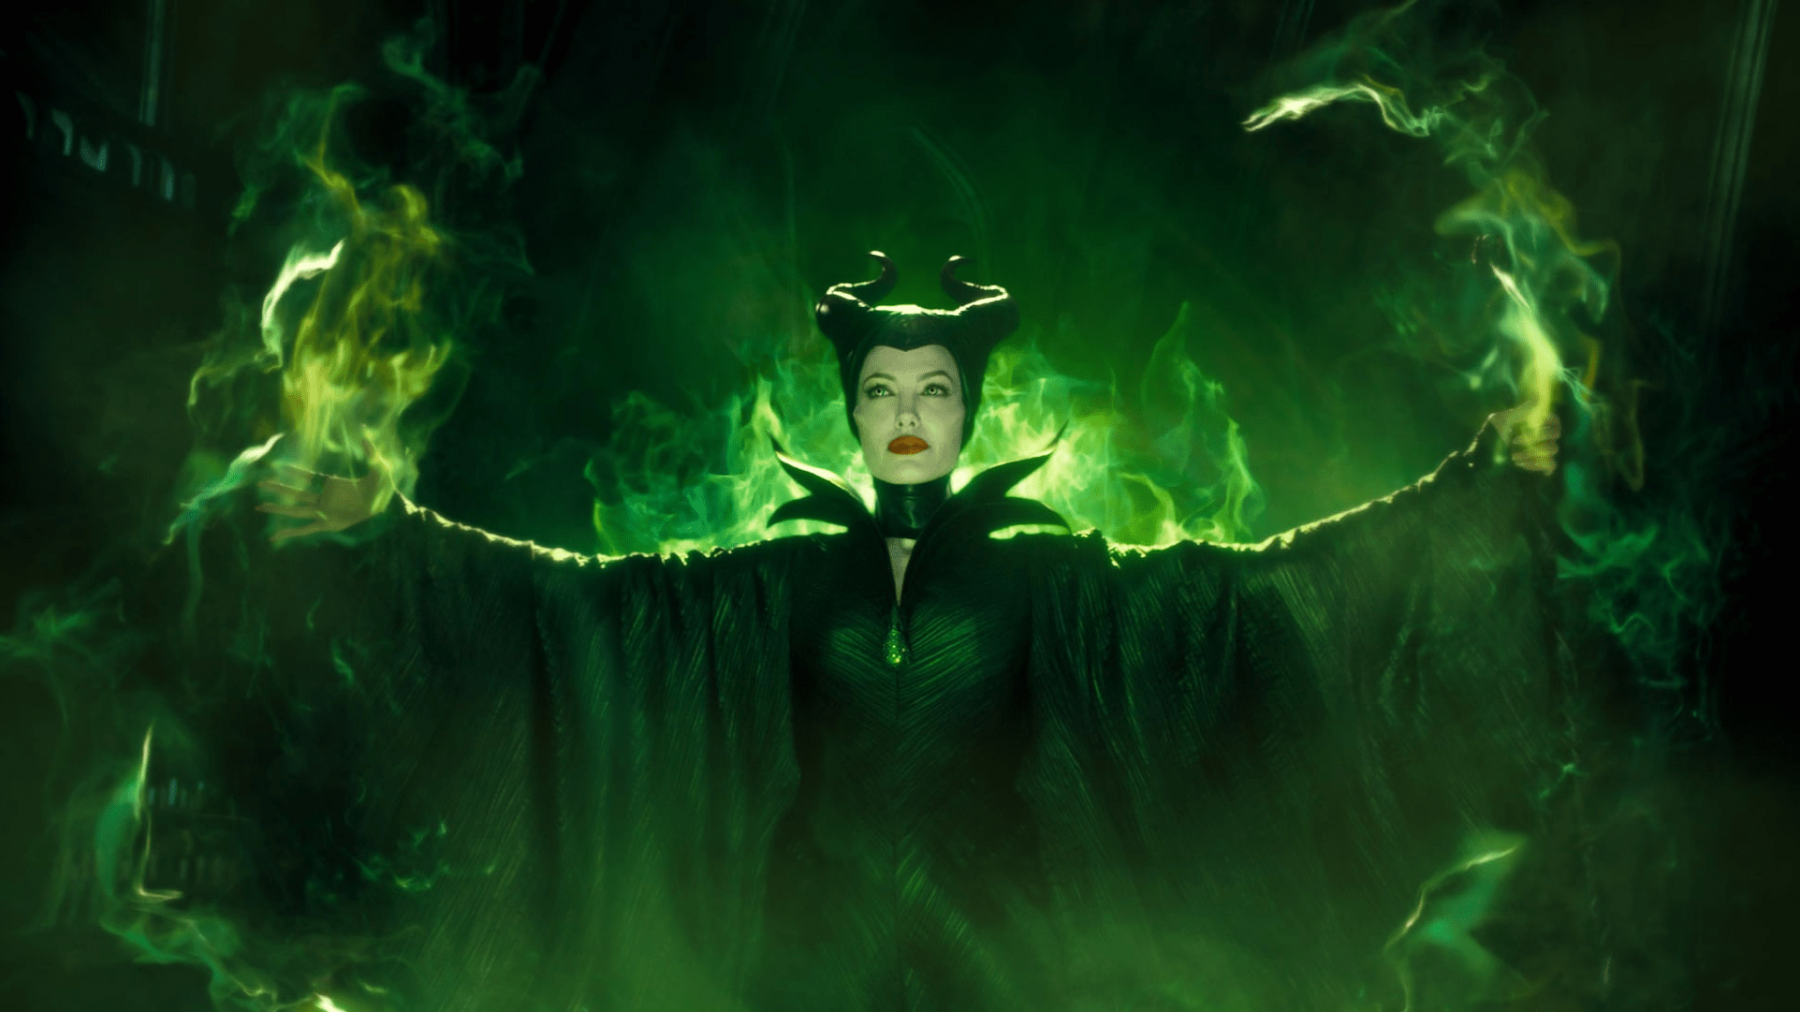 Maleficent Mistress Of Evil Hd Wallpapers 7wallpapers Net